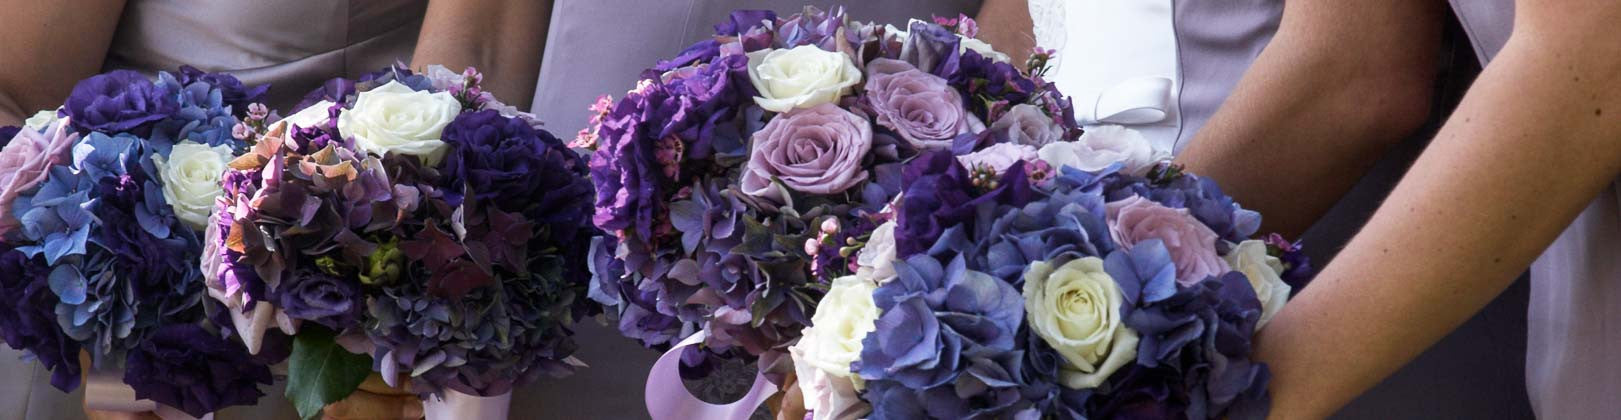 Purple Bridal Flowers and Wedding Arrangements in San Diego